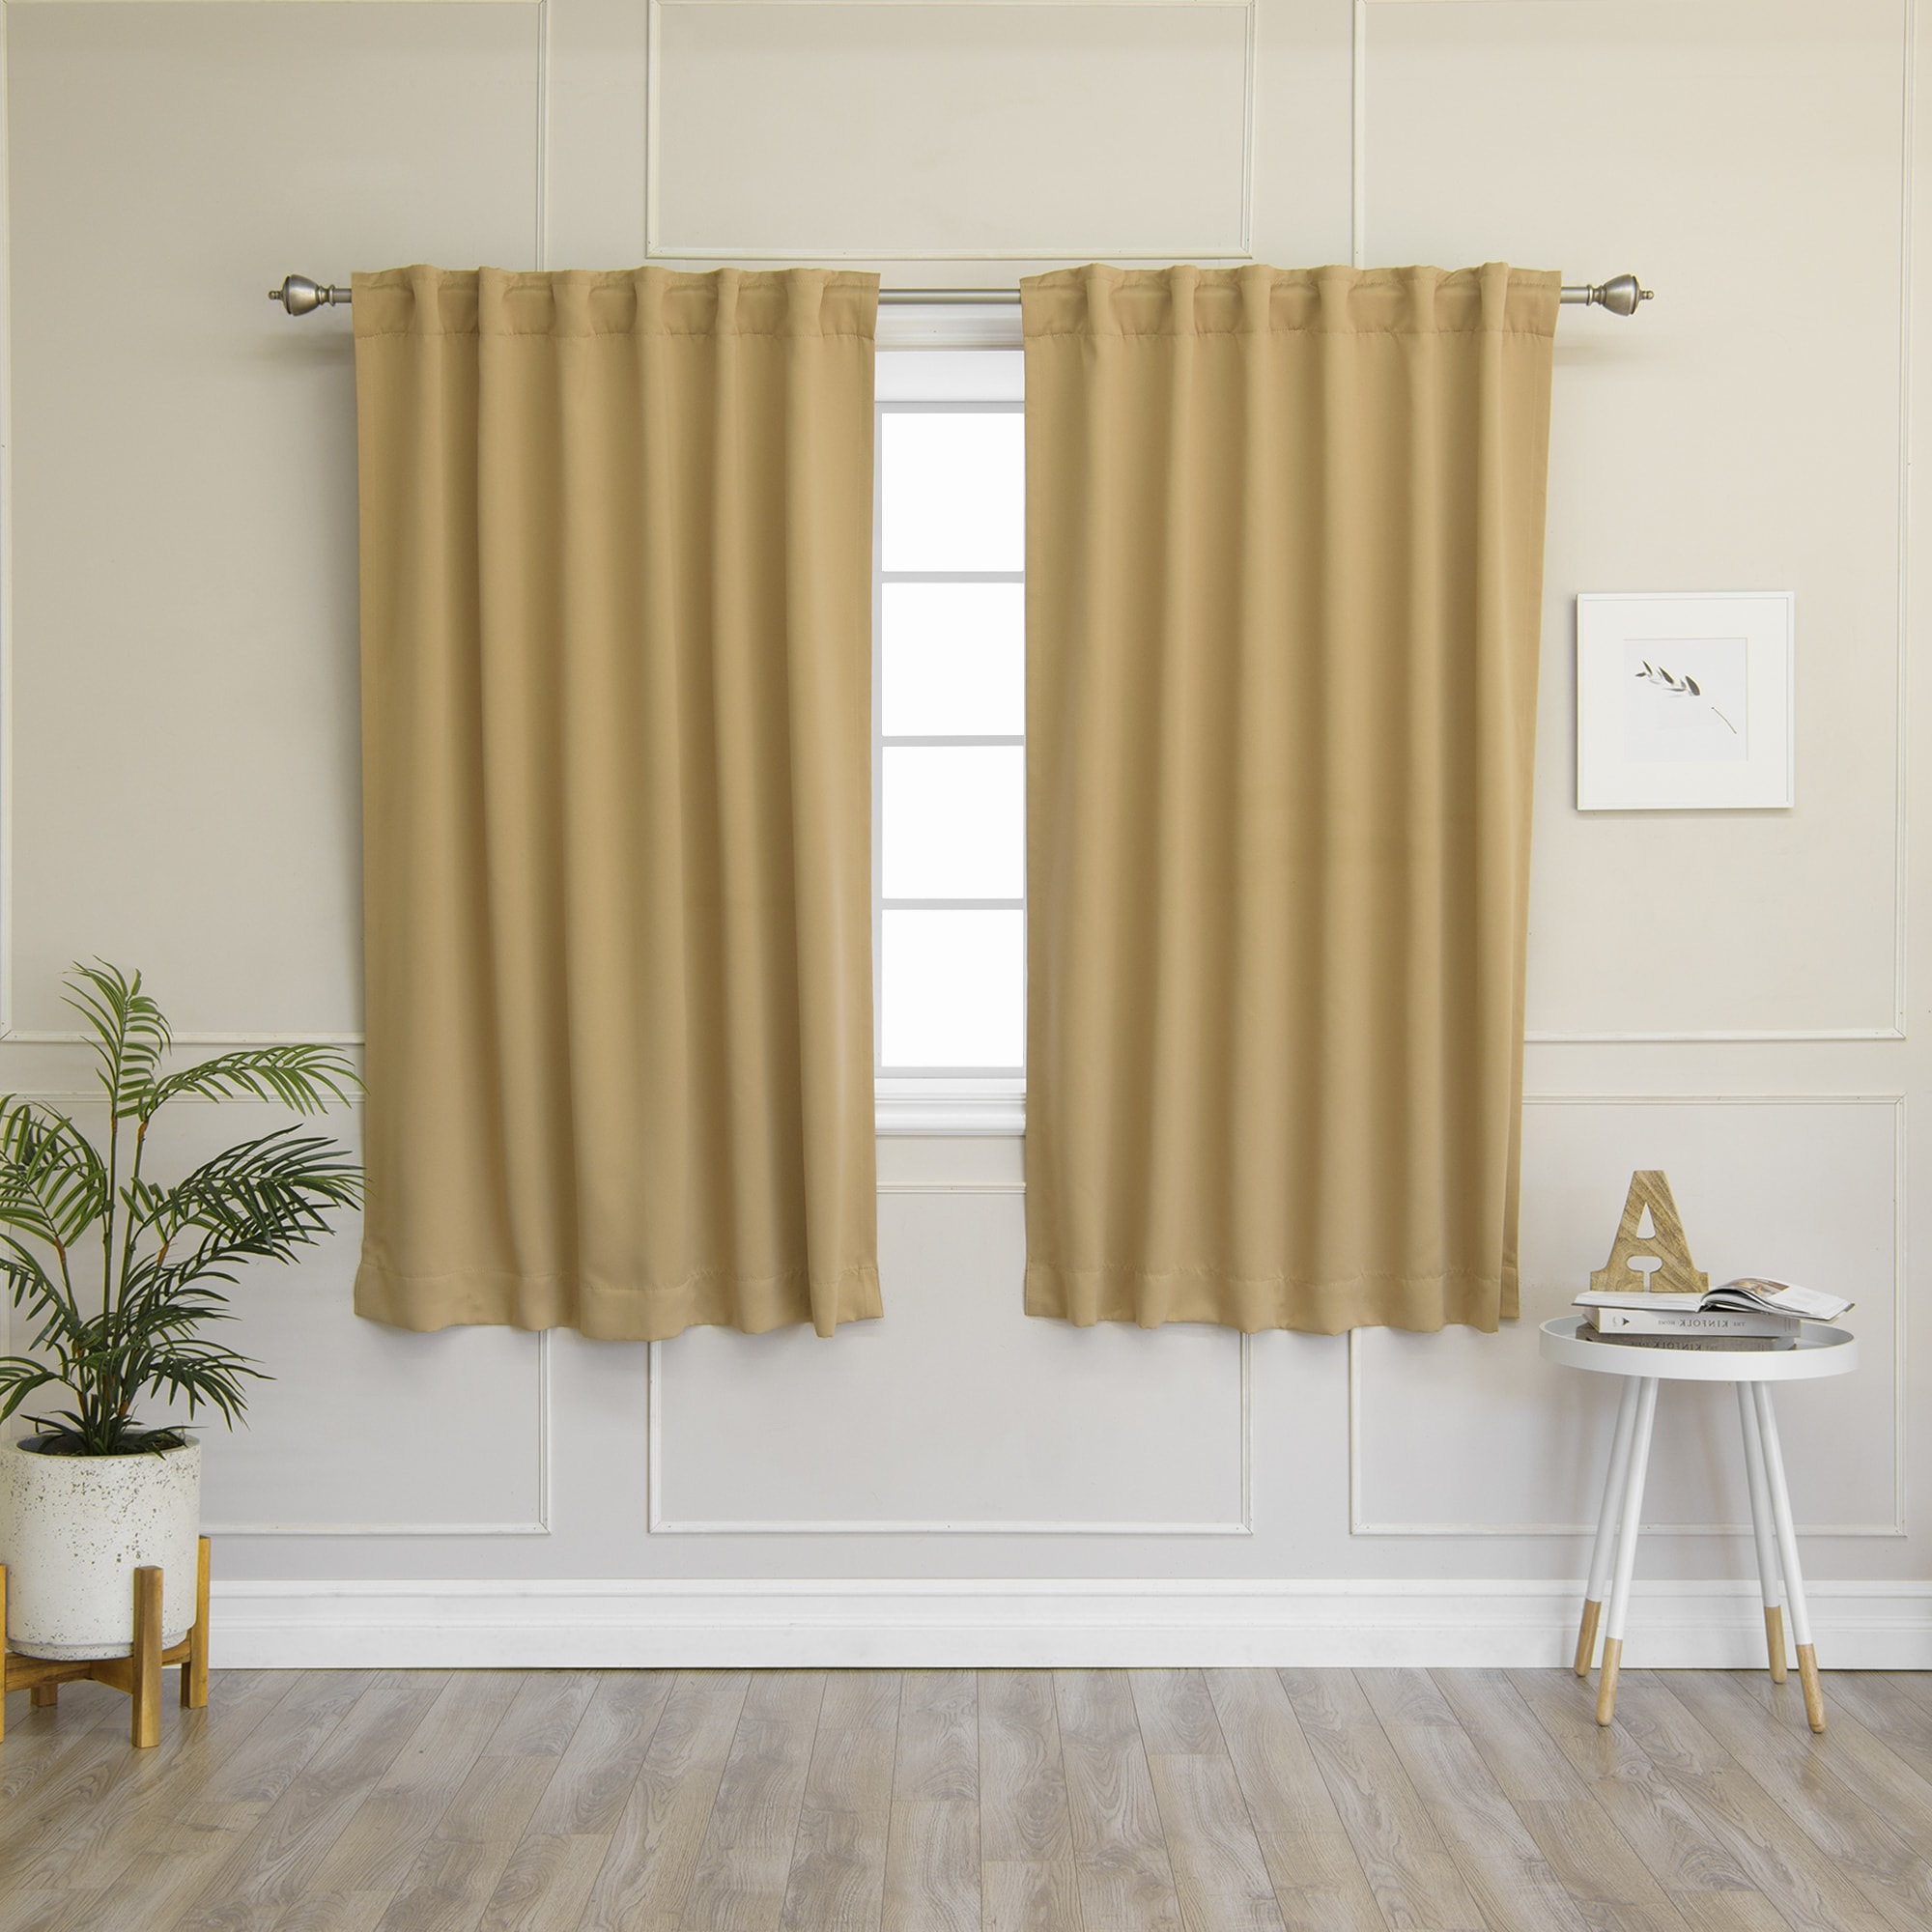 Solid Insulated Thermal Blackout Curtain Panel Pairs Pertaining To Widely Used Aurora Home Solid Insulated Thermal 63 Inch Blackout Curtain (View 13 of 20)